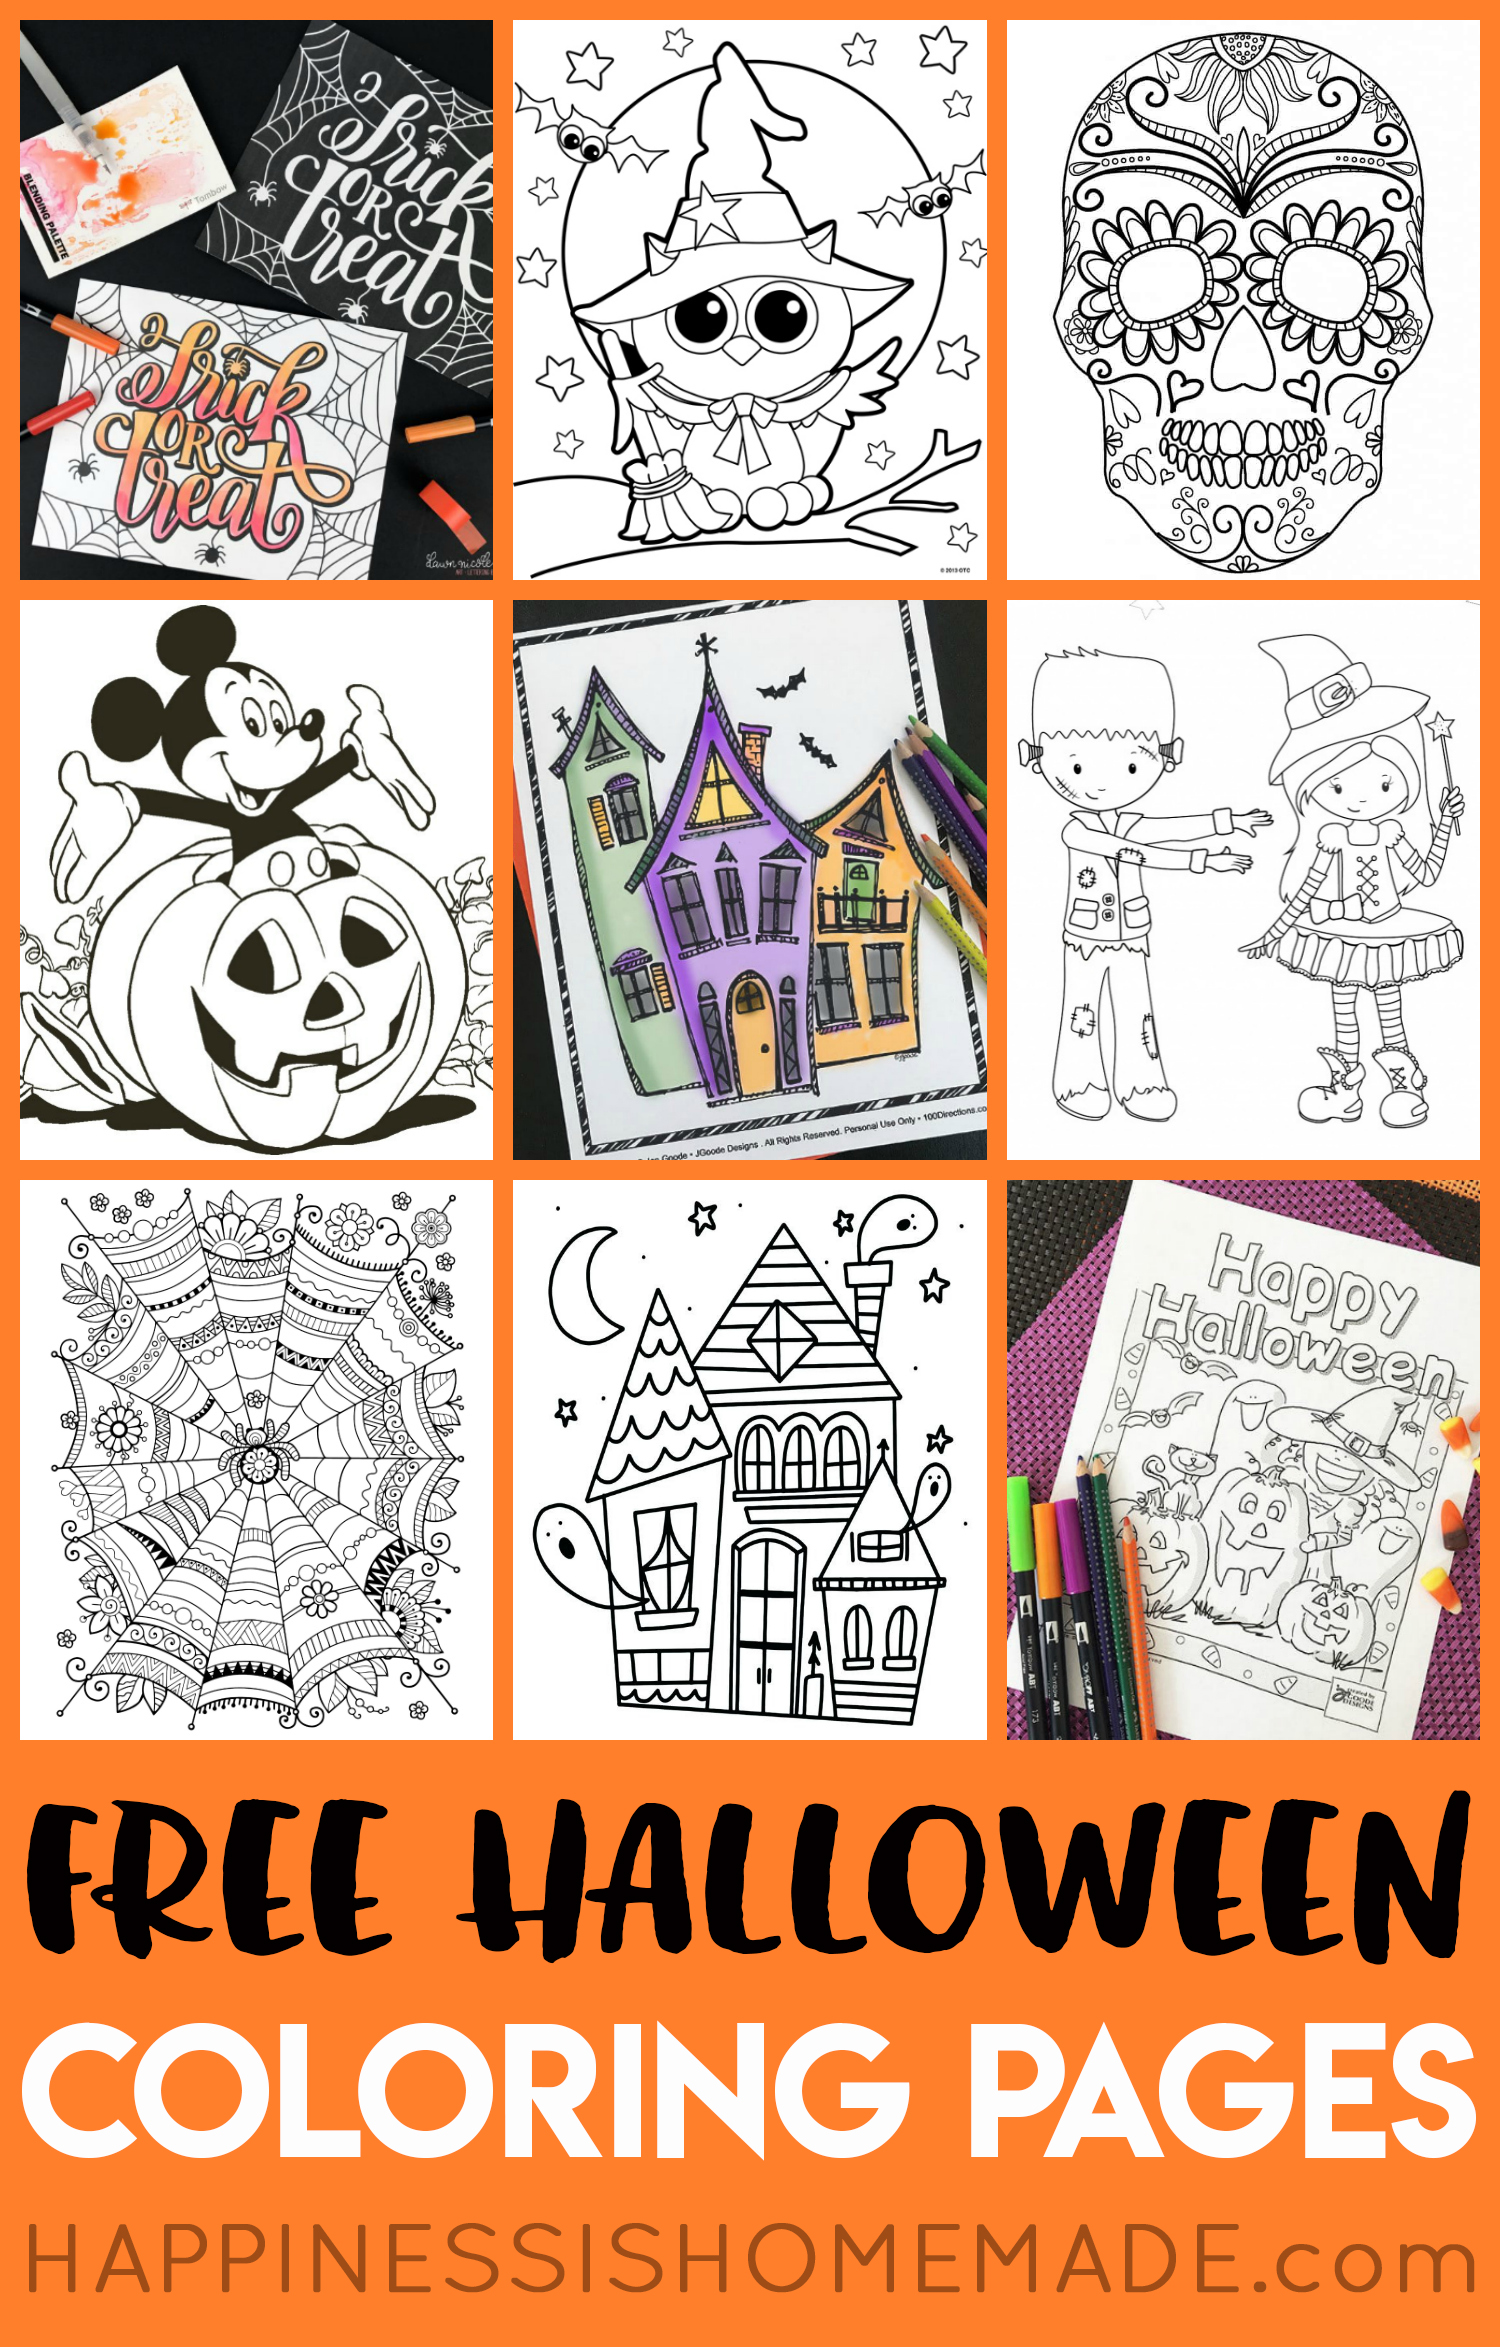 Halloween mickey mouse charlie brown haunted houses sugar skulls bats witches and more these printable halloween coloring sheets are sure to be a